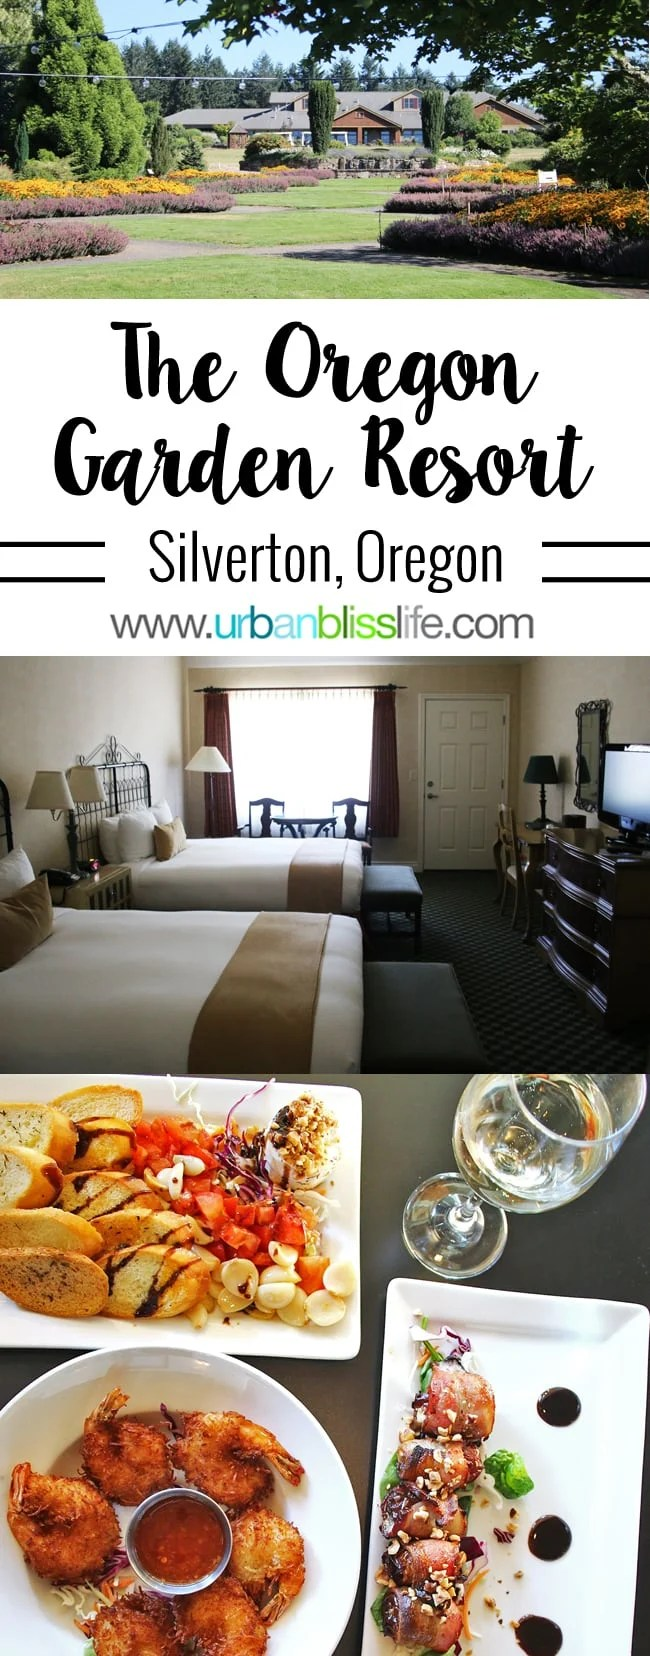 The Oregon Garden Resort travel on UrbanBlissLife.com